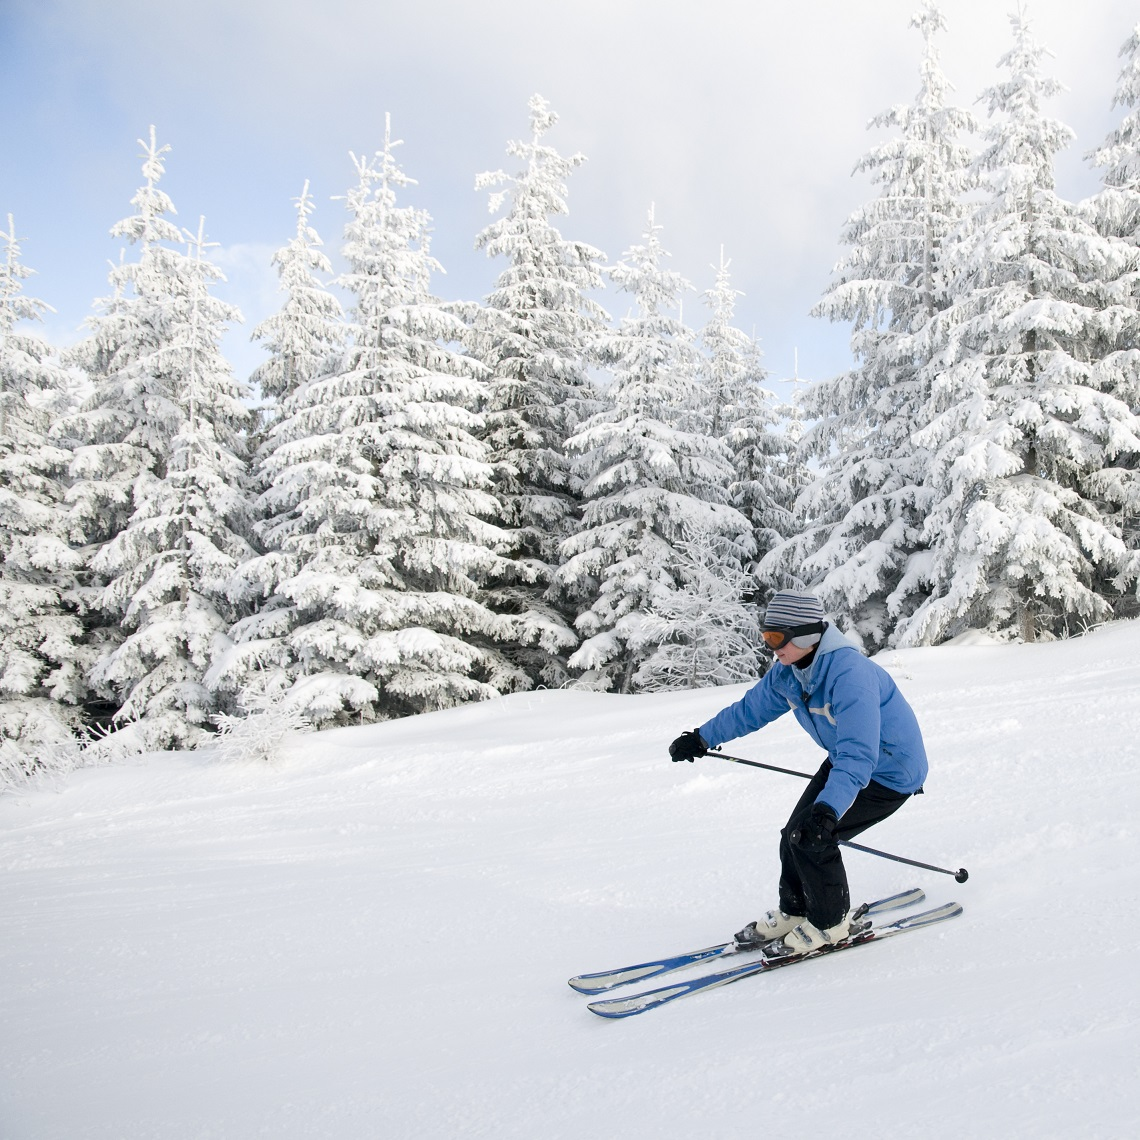 wintergreen resort & massanutten ski resort trips